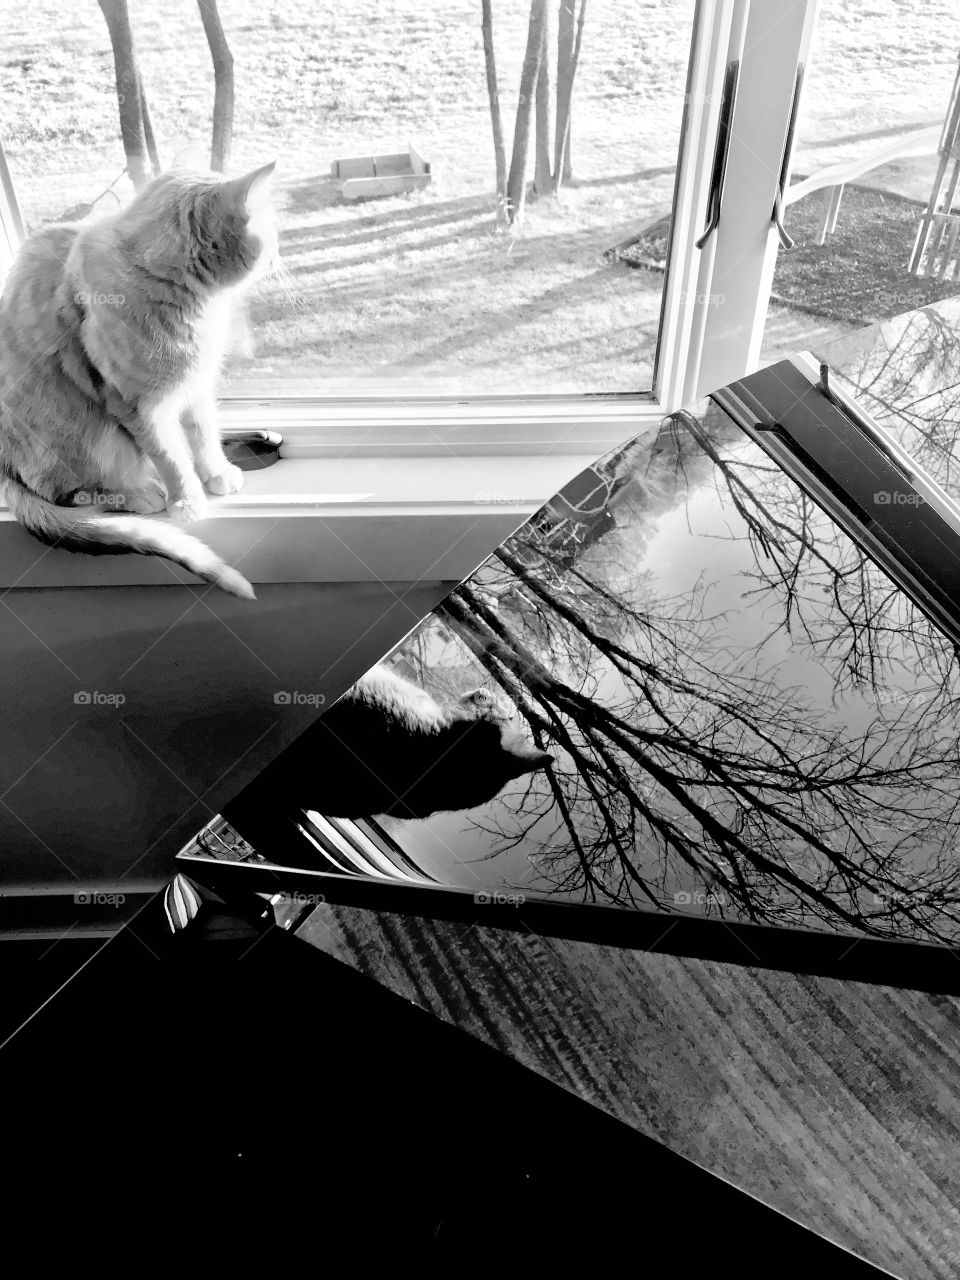 Gorgeous black and white photo of tabby cat looking out back sunroom window with reflection of him and trees in lid of baby grand piano.